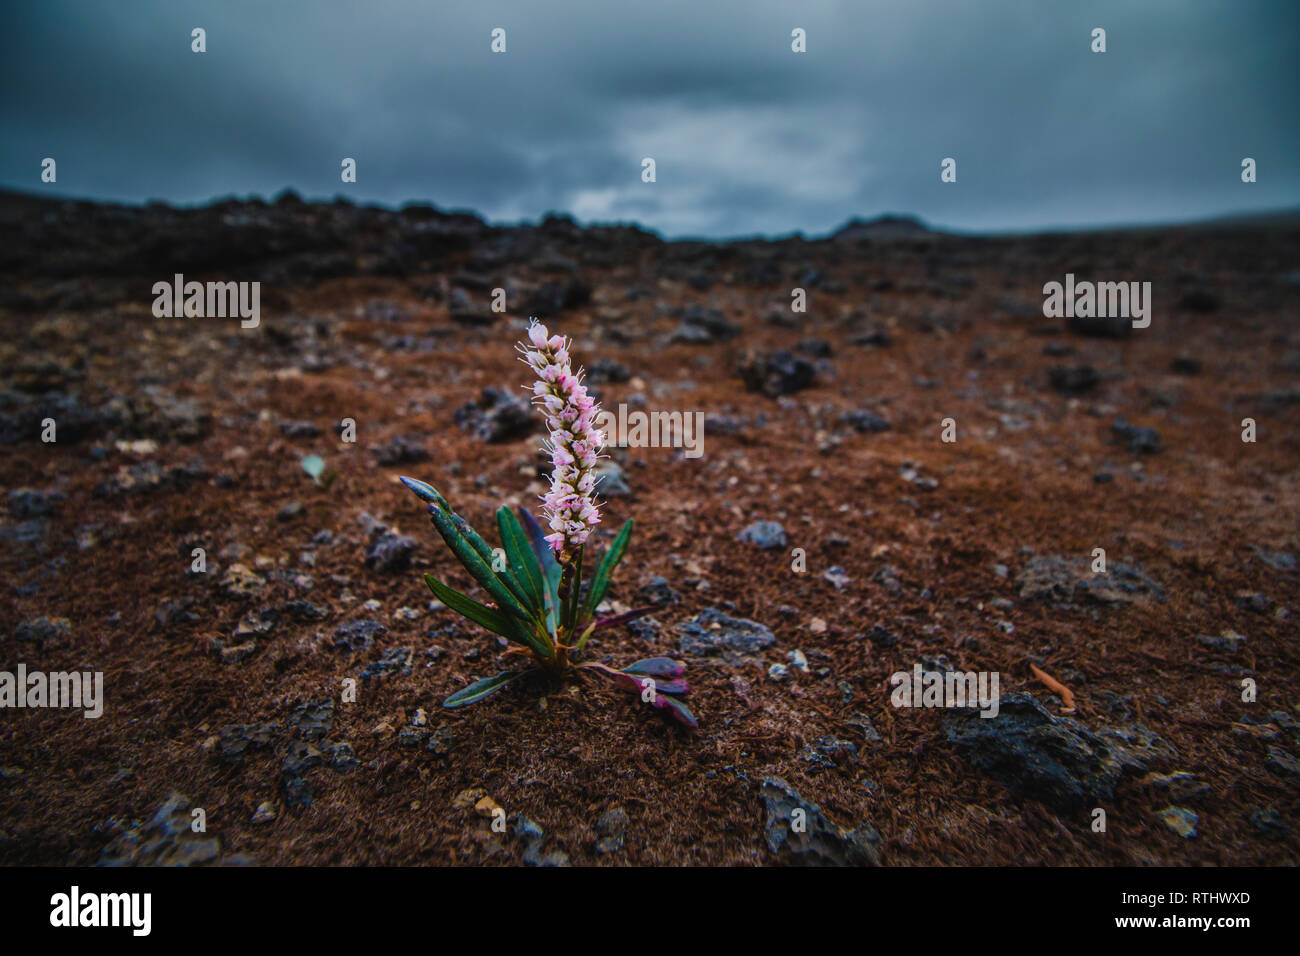 Pink plant growing on lava field in Iceland at summer season - Stock Image